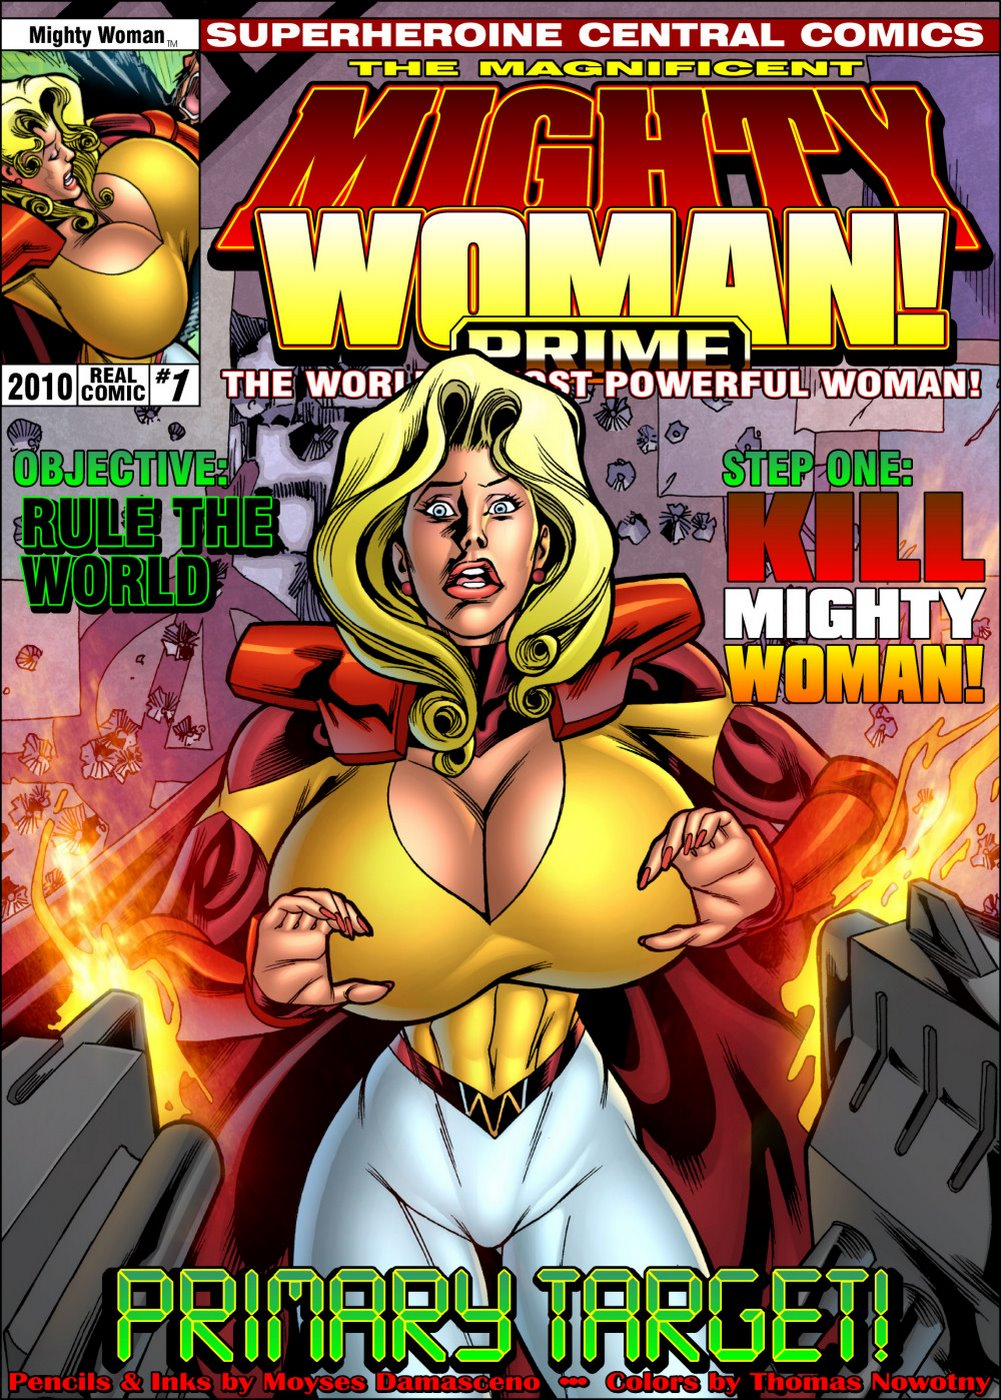 Porn Comics - Mighty Woman Prime in Primary Target- Superheroine Central porn comics 8 muses